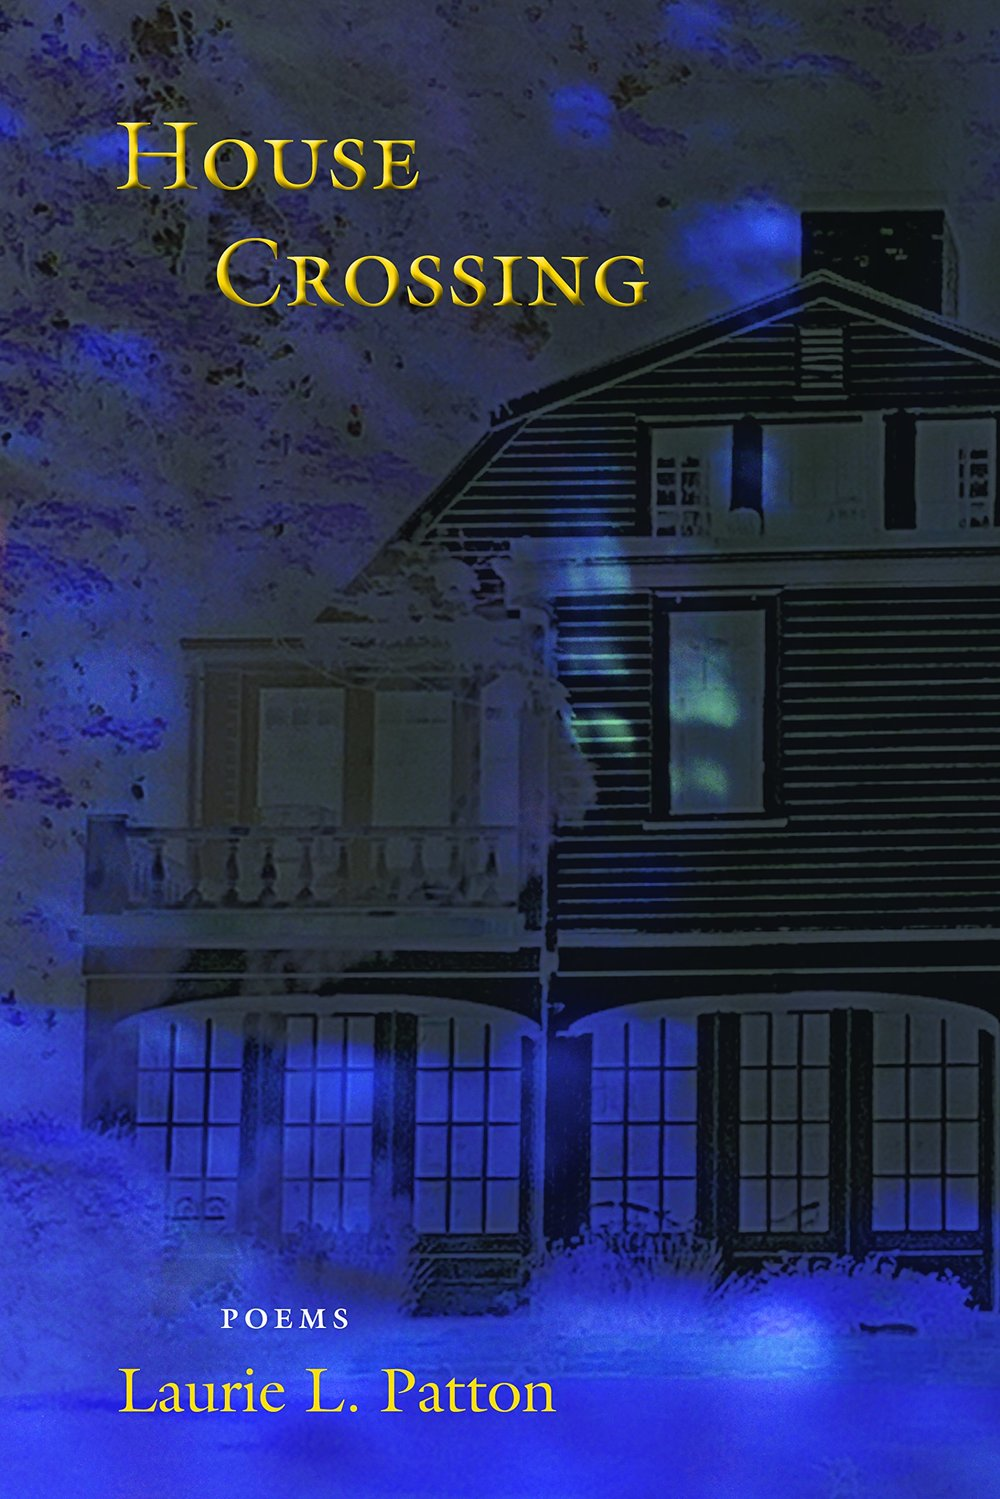 House Crossing Poems by Laurie L. Patton